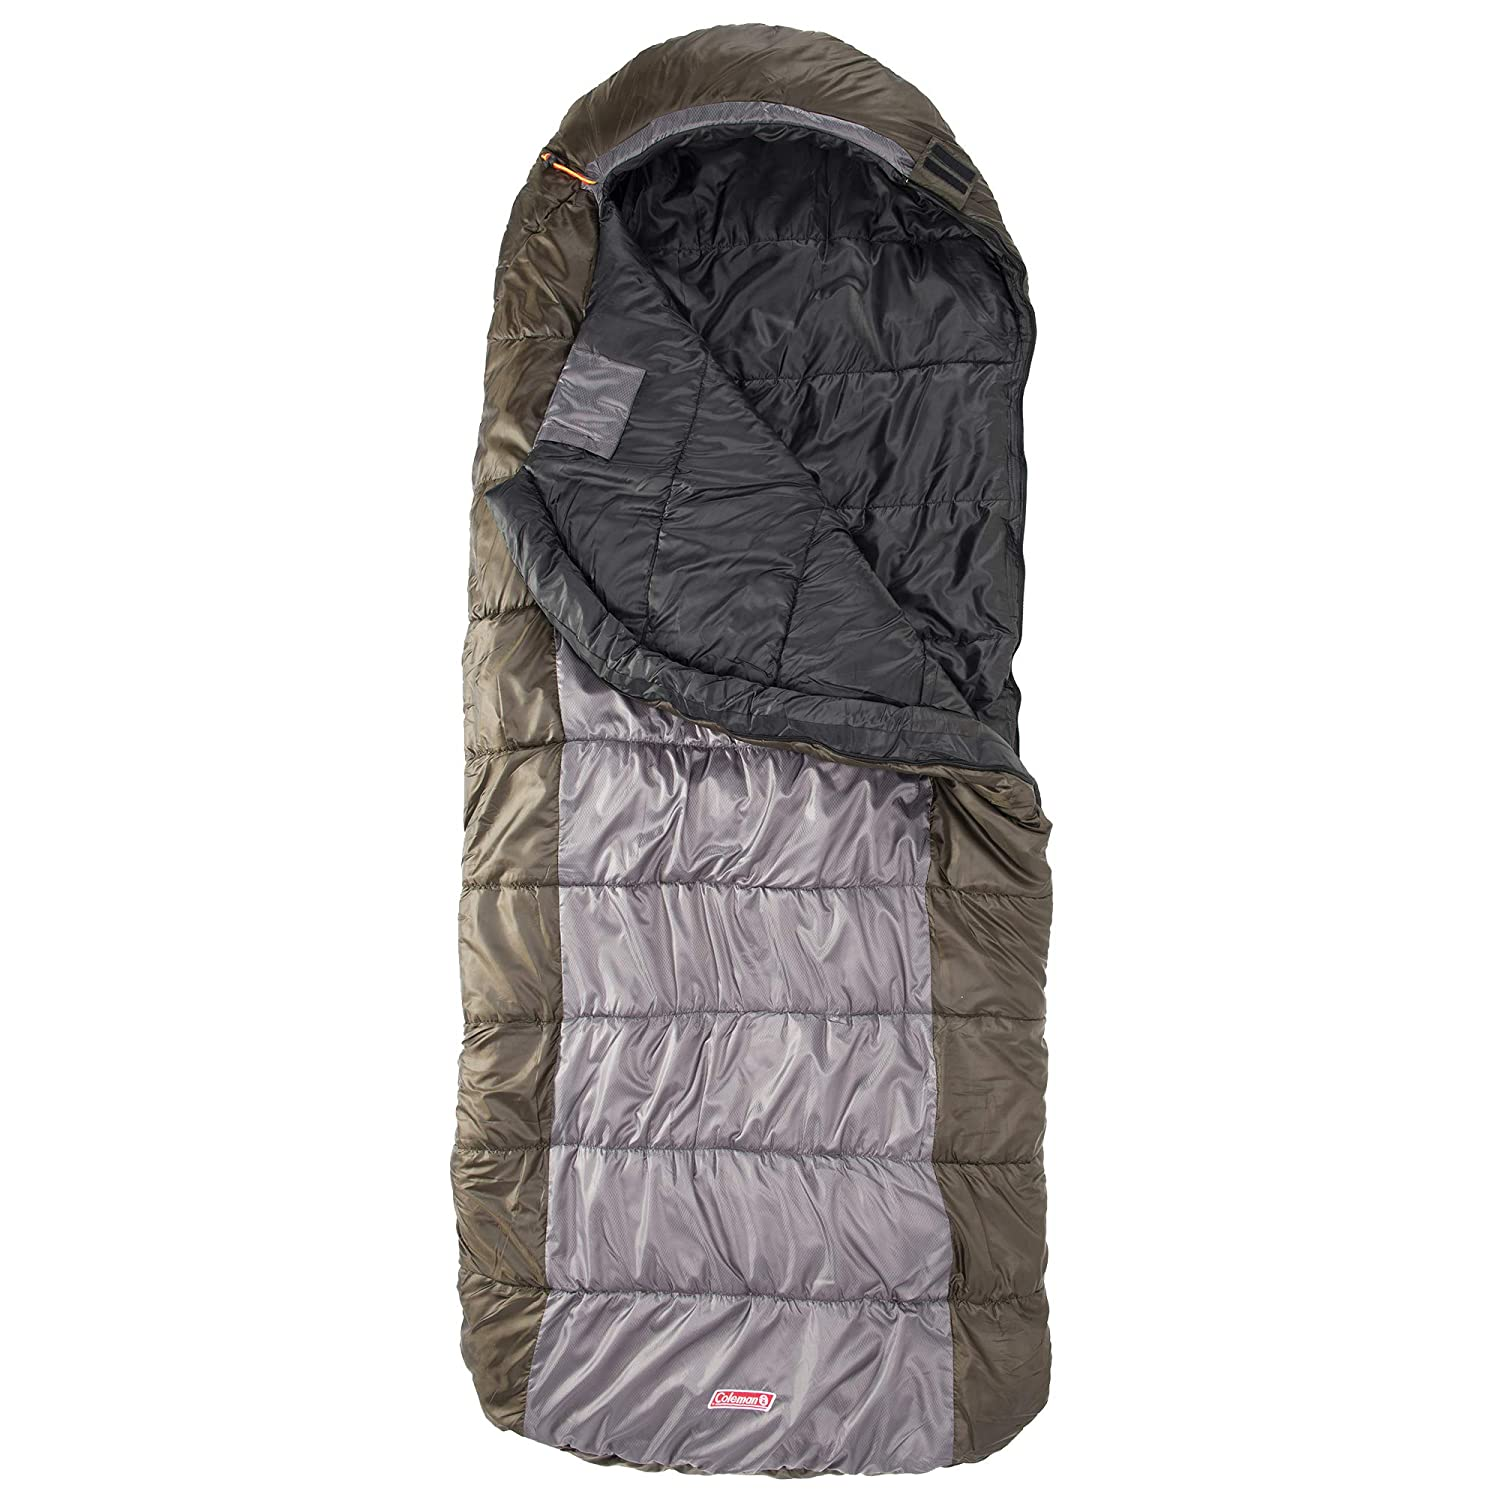 7b054223a95 Amazon.com   Coleman Big Basin 15 Big and Tall Adult Sleeping Bag   Winter Sleeping  Bags   Sports   Outdoors